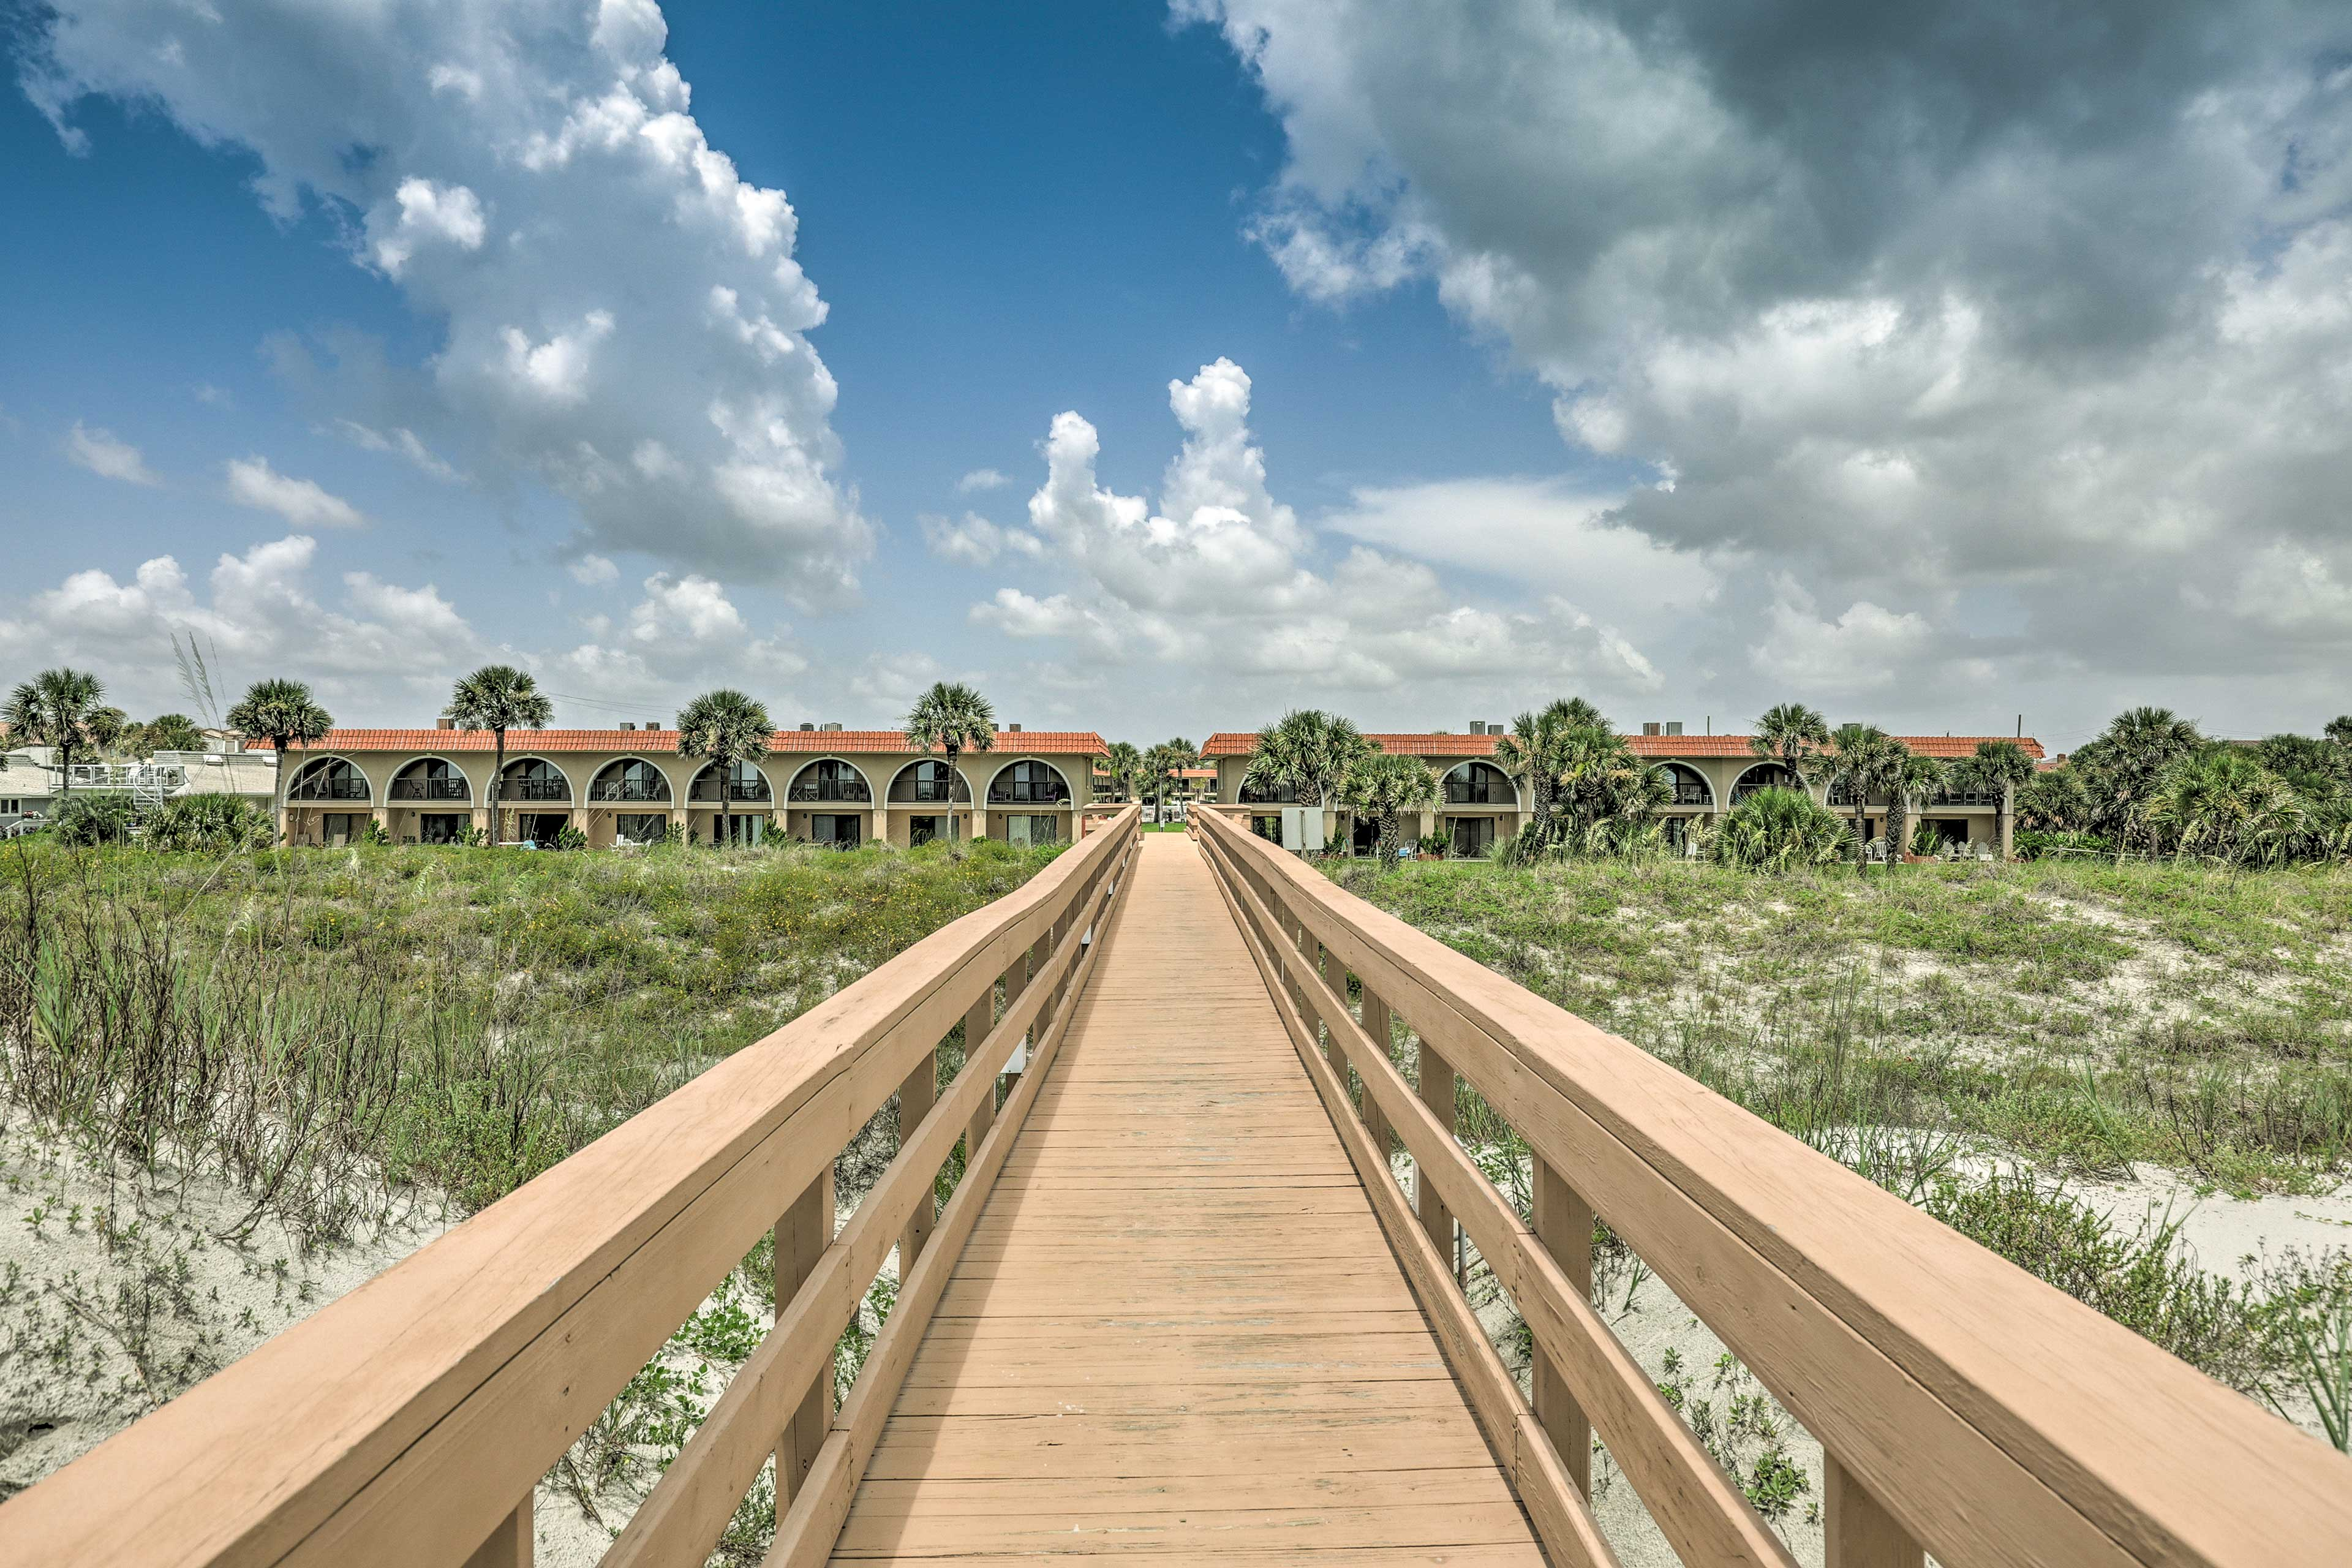 The beach lies a quick boardwalk away from the vacation rental.